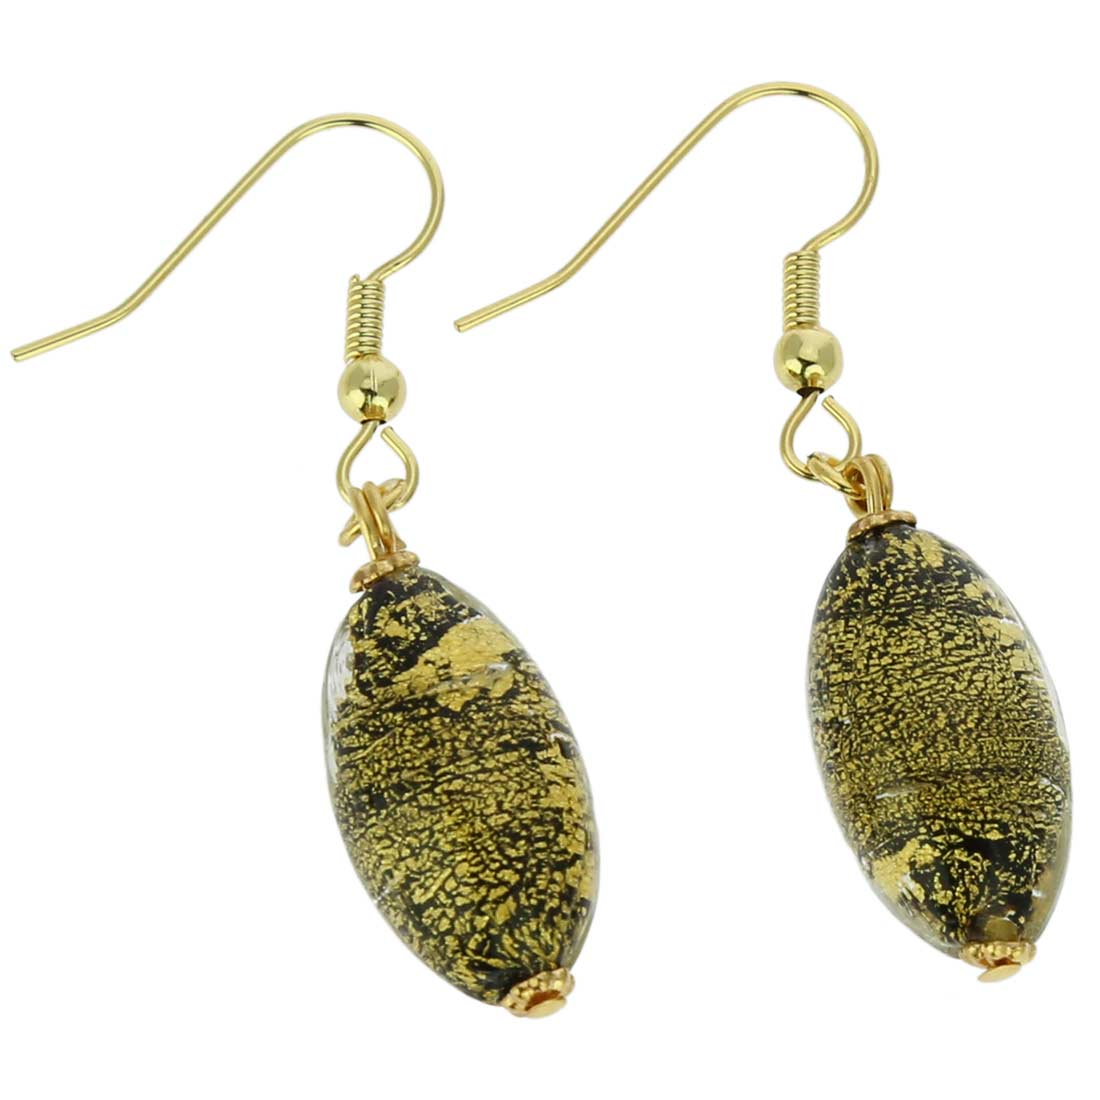 Ca D'Oro Olives Earrings - Black